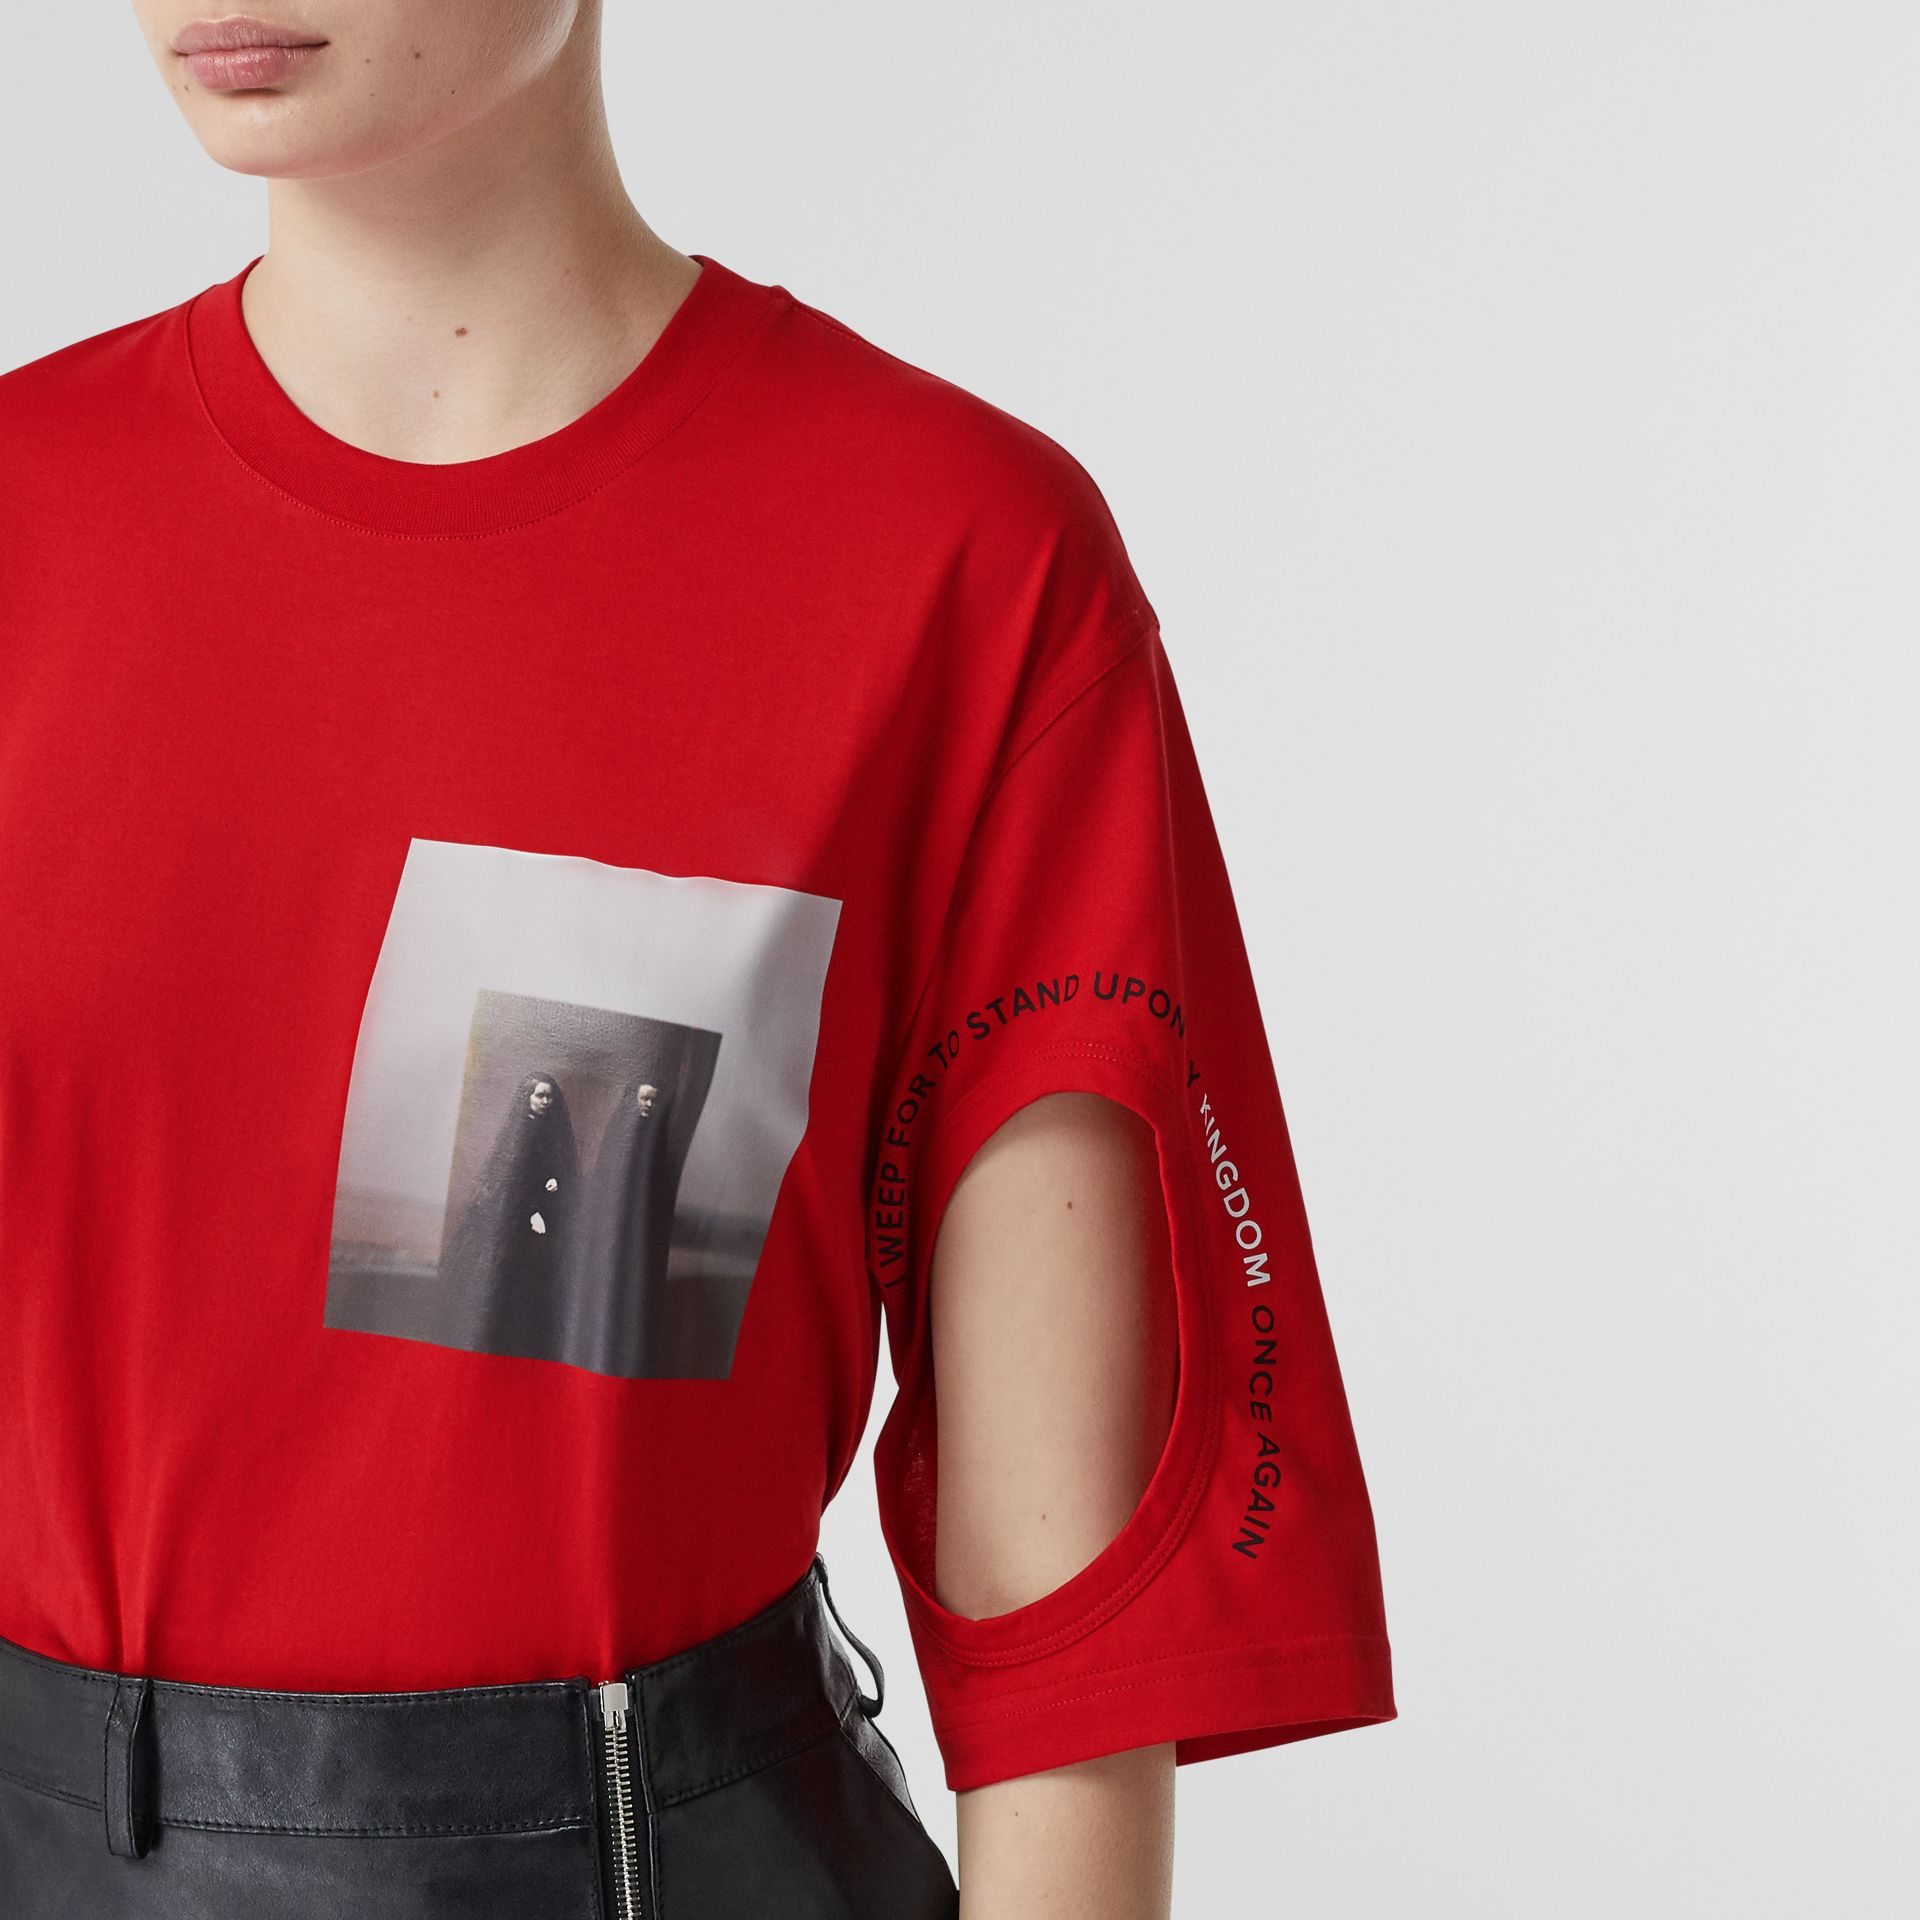 Cut-out Detail Montage Print Oversized T-shirt in Bright Red - Women | Burberry United Kingdom - gallery image 1